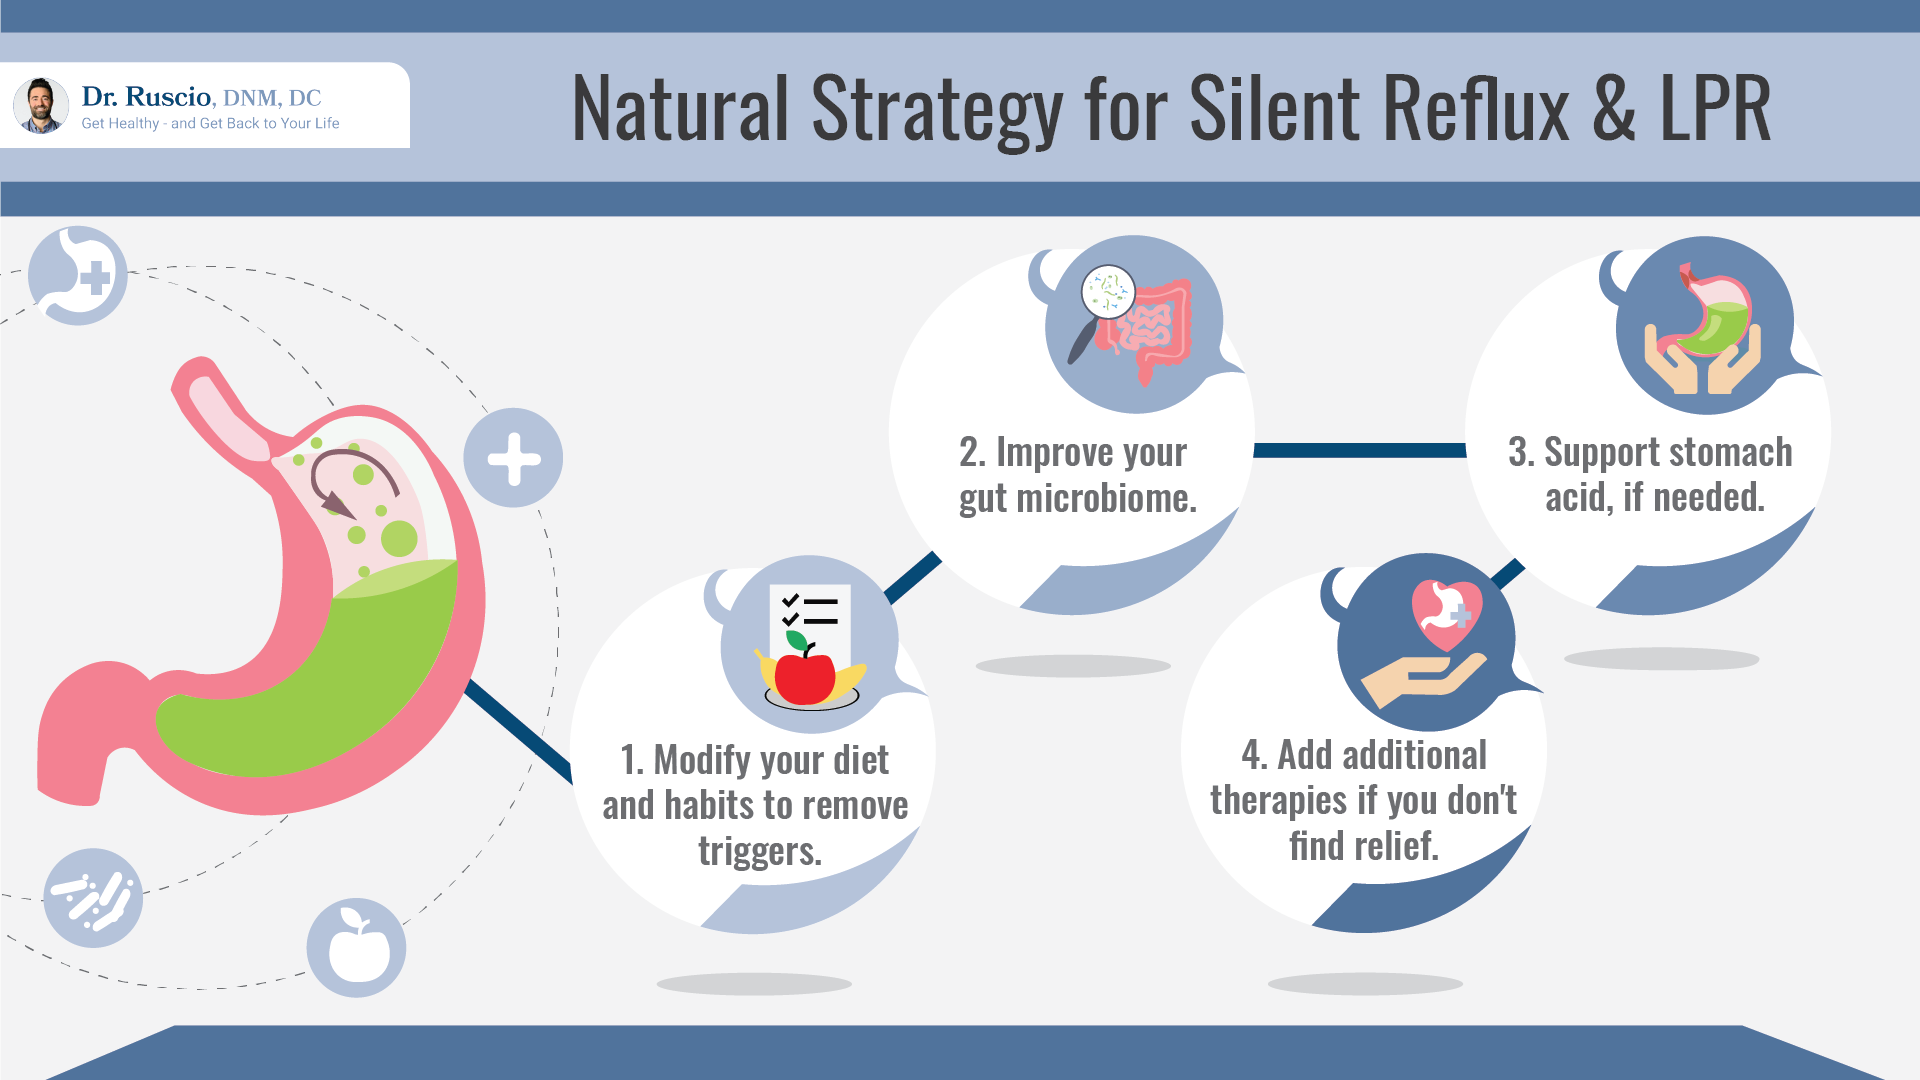 Natural strategy for silent reflux & LPR infographic by Dr. Ruscio